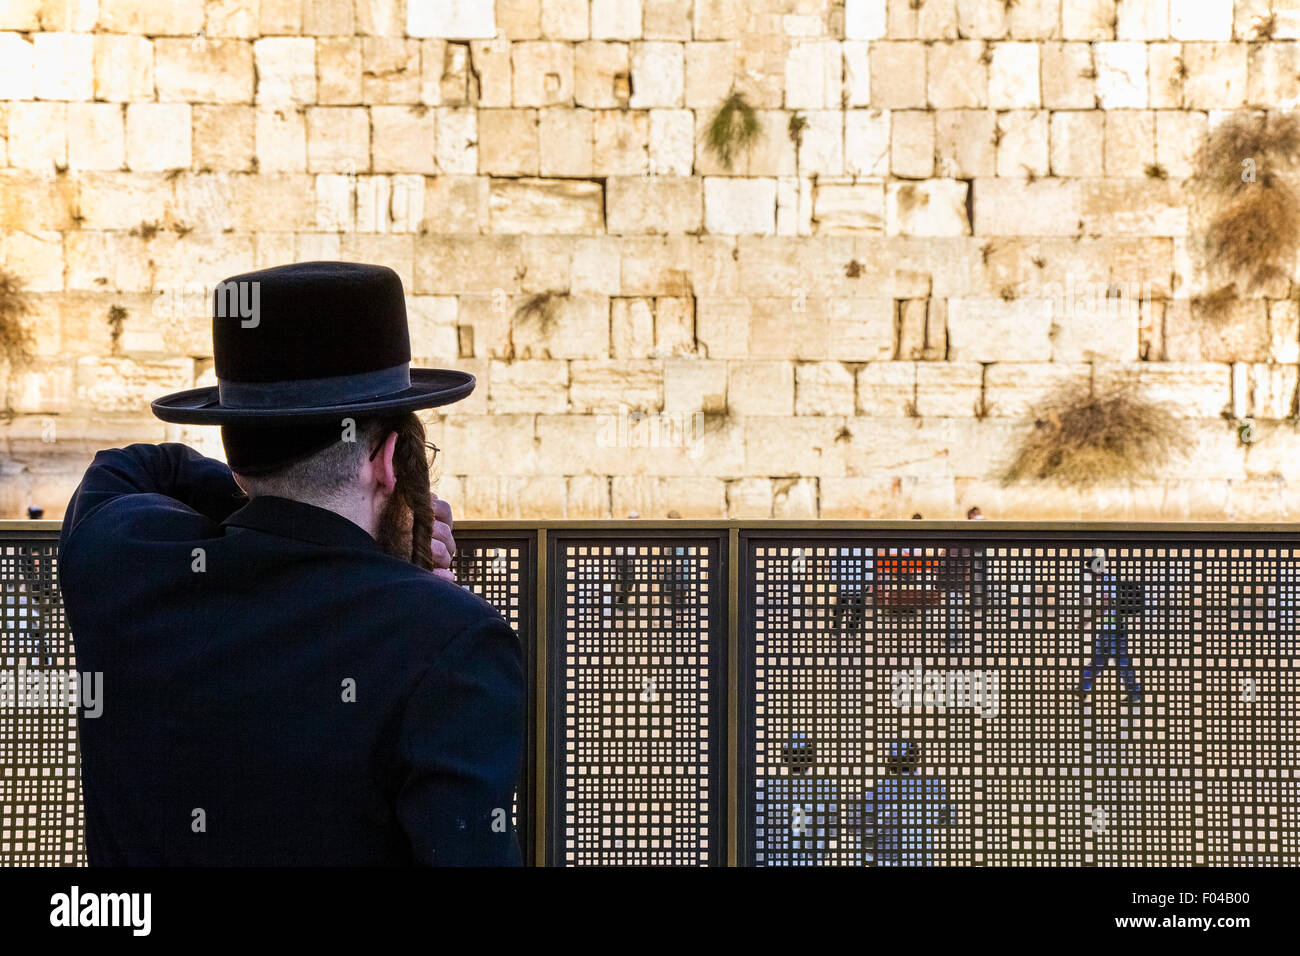 Israel, Jerusalem, an orthodox jew looking at the western wall - Stock Image